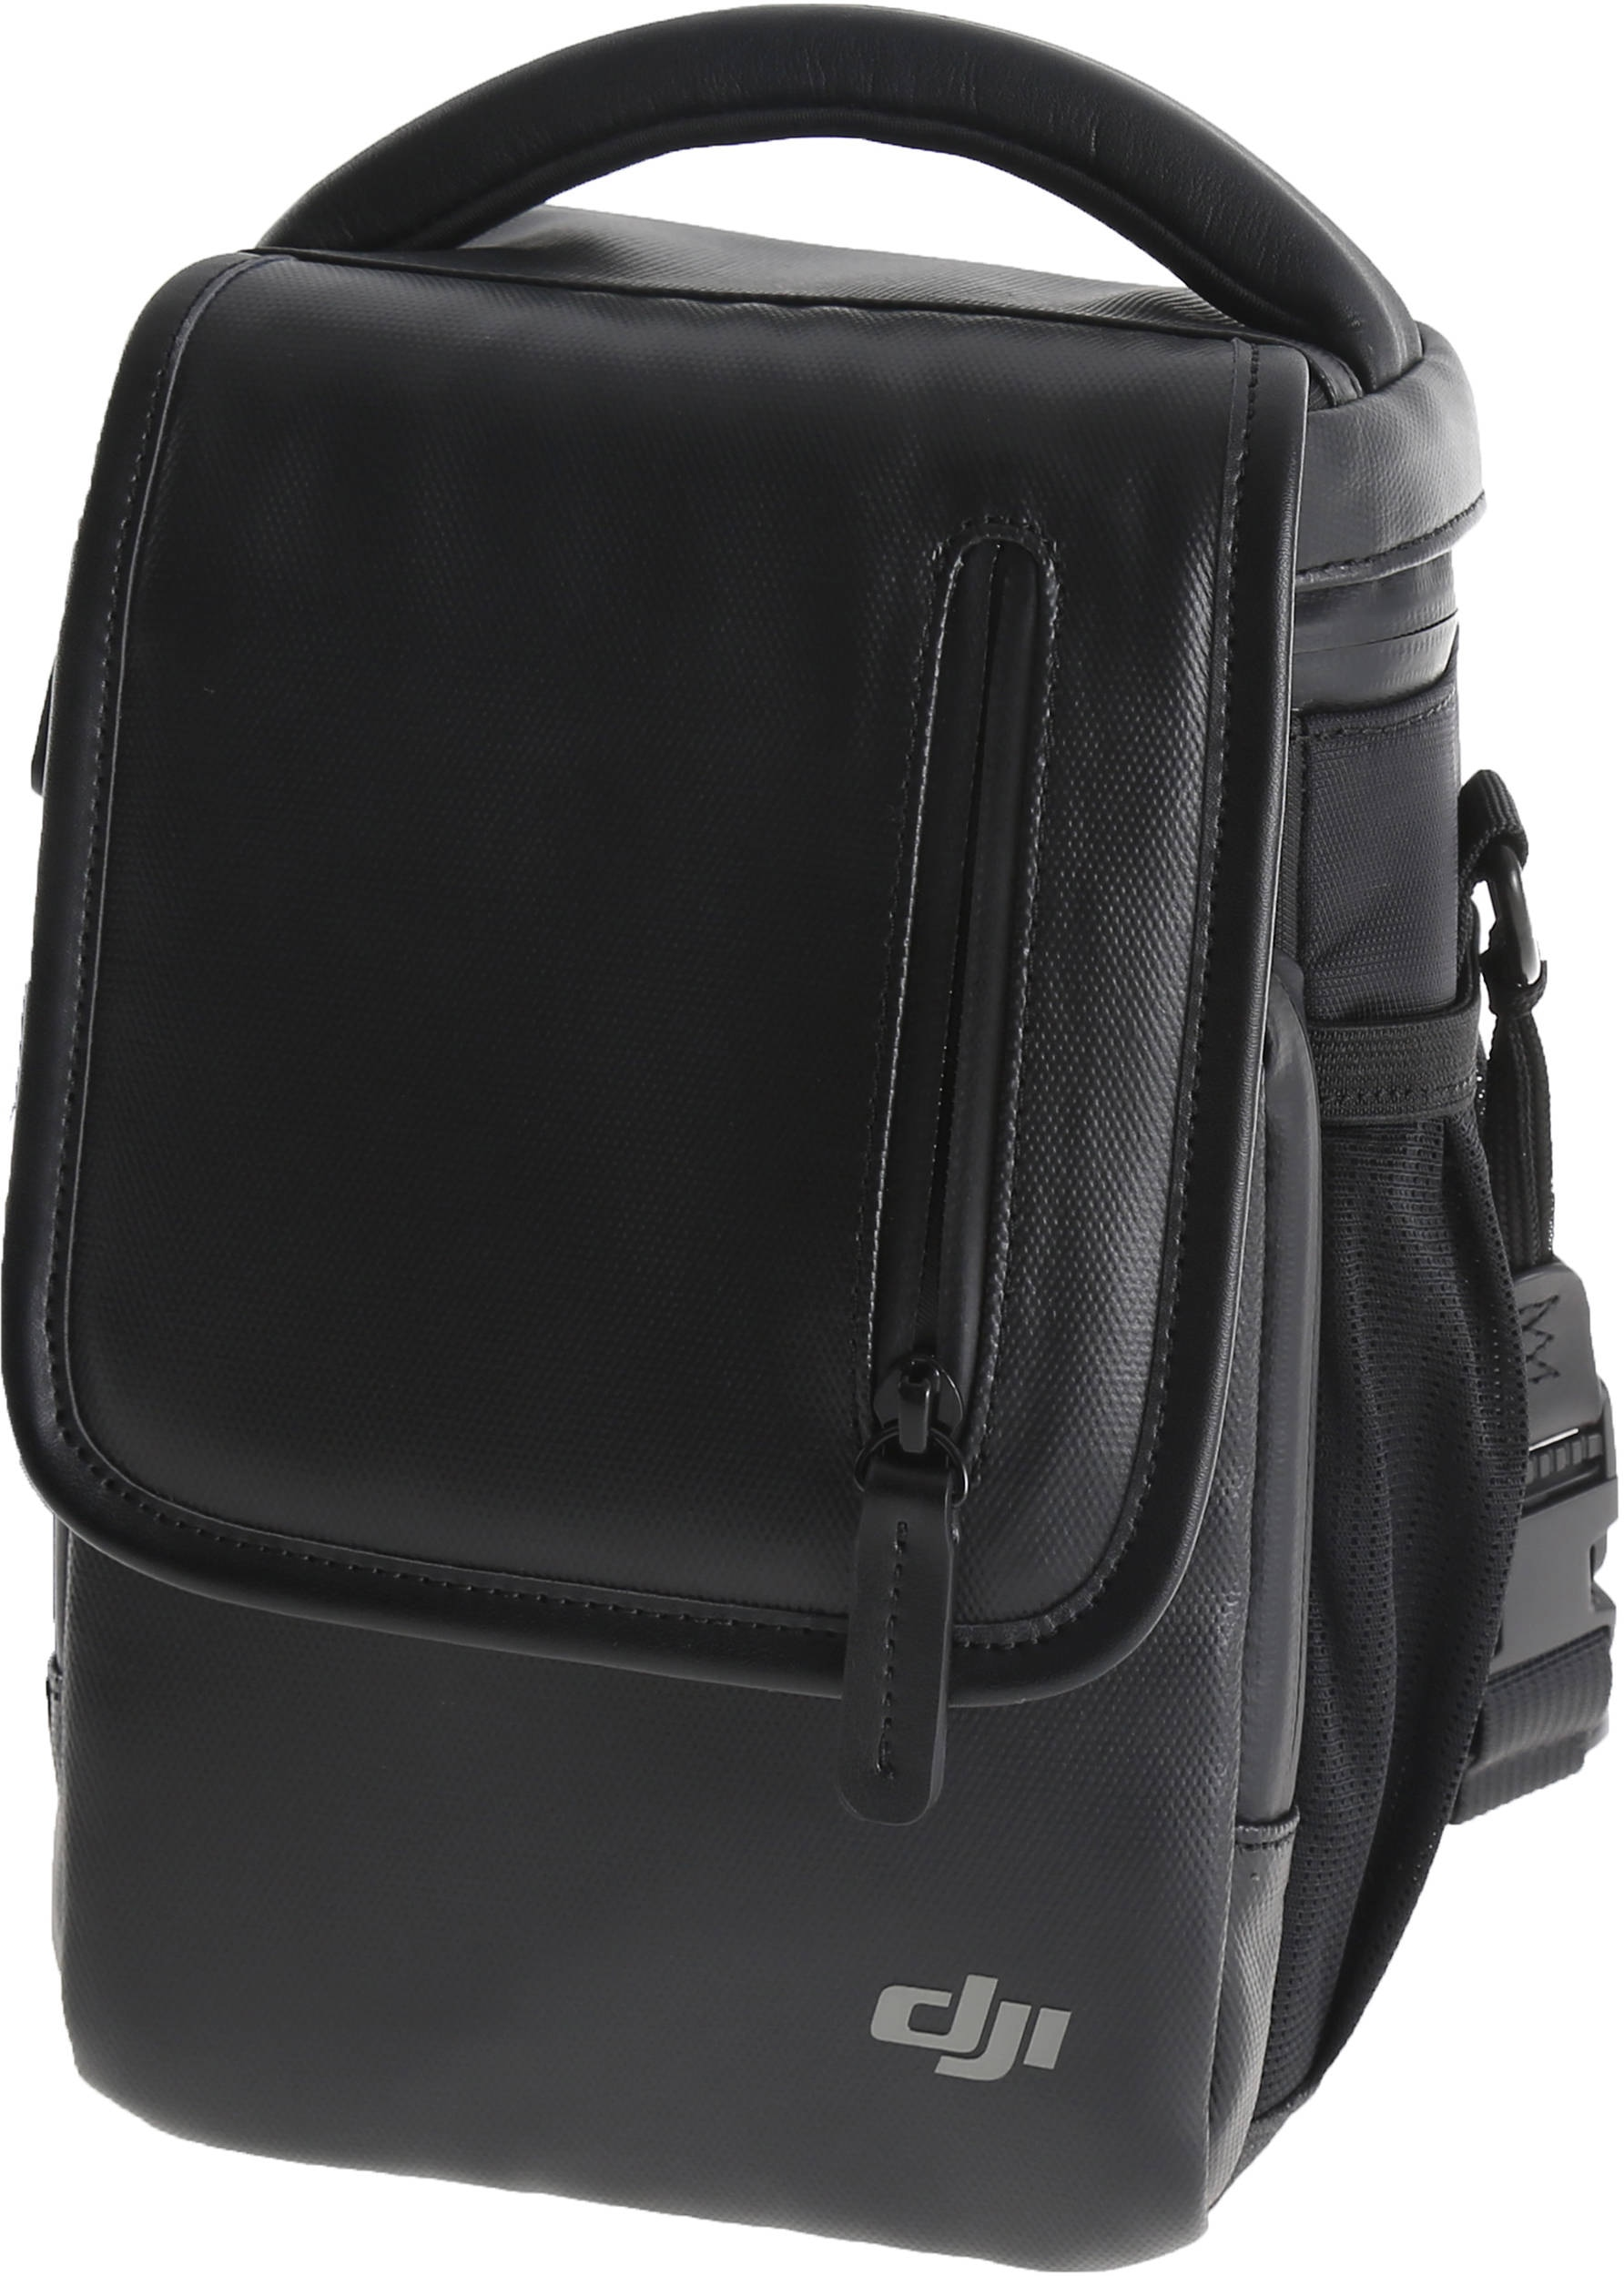 Сумка DJI Shoulder Bag (CP.PT.000591) для Mavic Pro-1